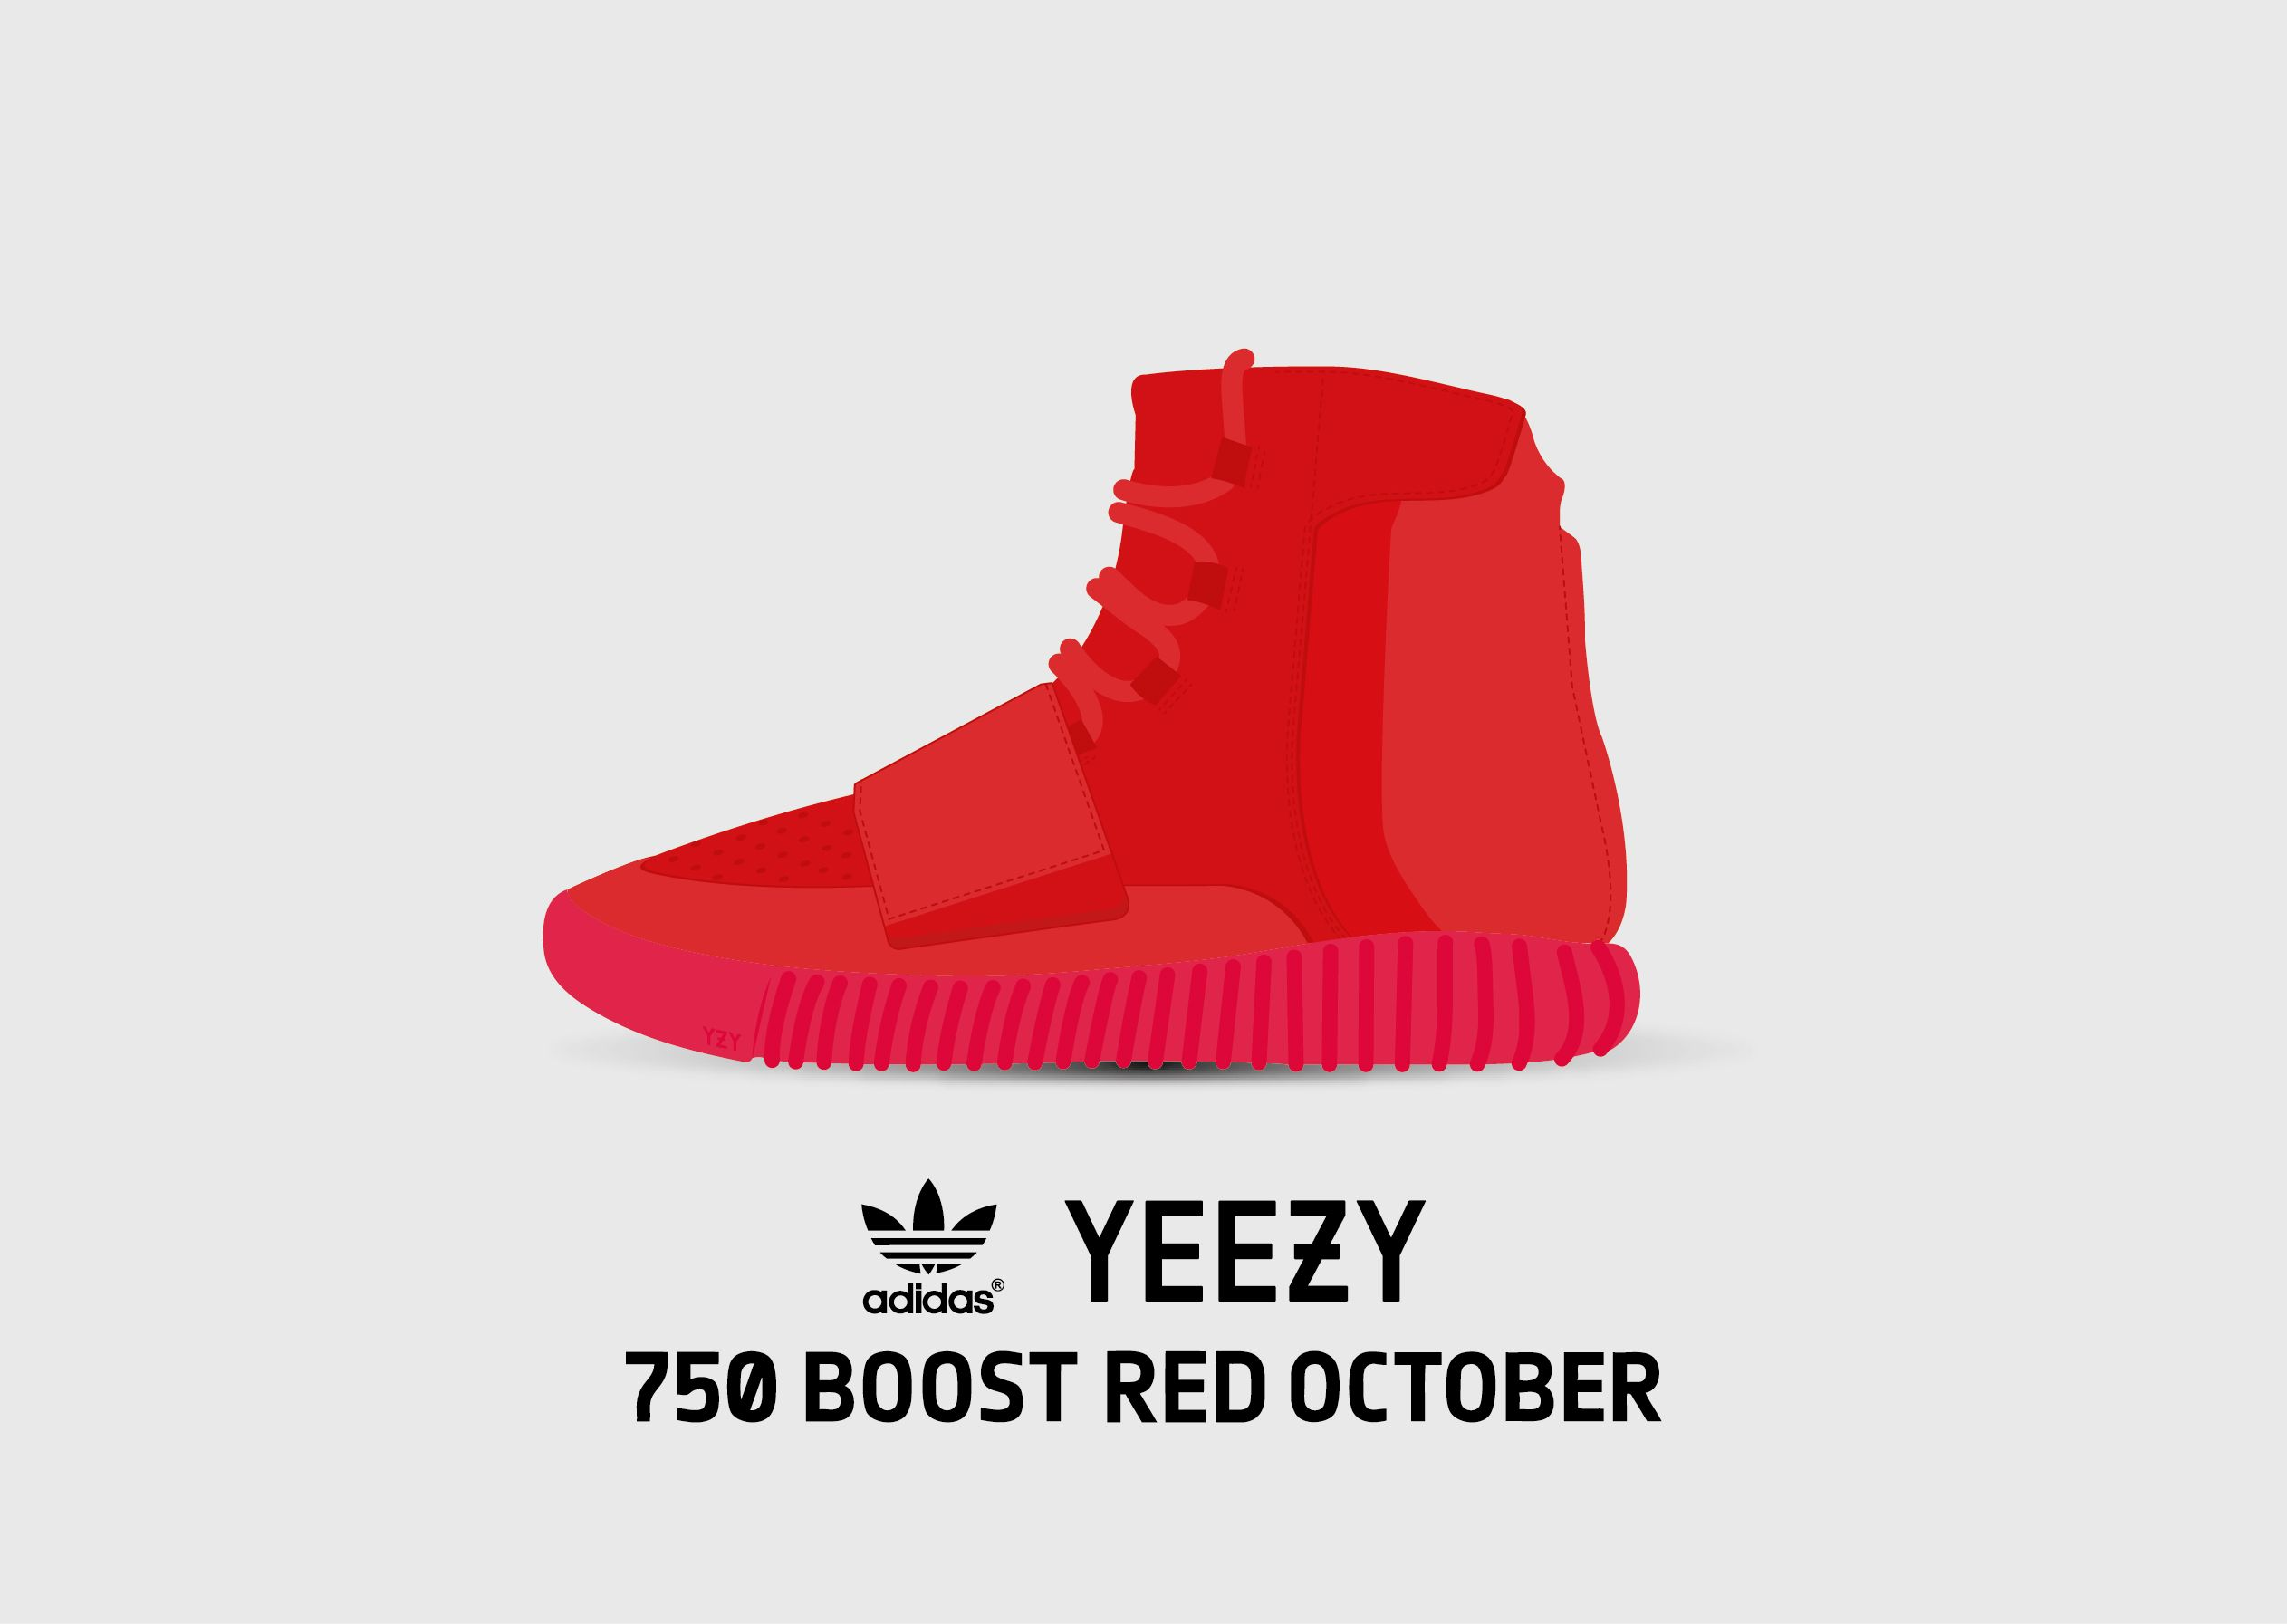 dbc32b77bea Yeezy 750 Boost RED OCTOBER